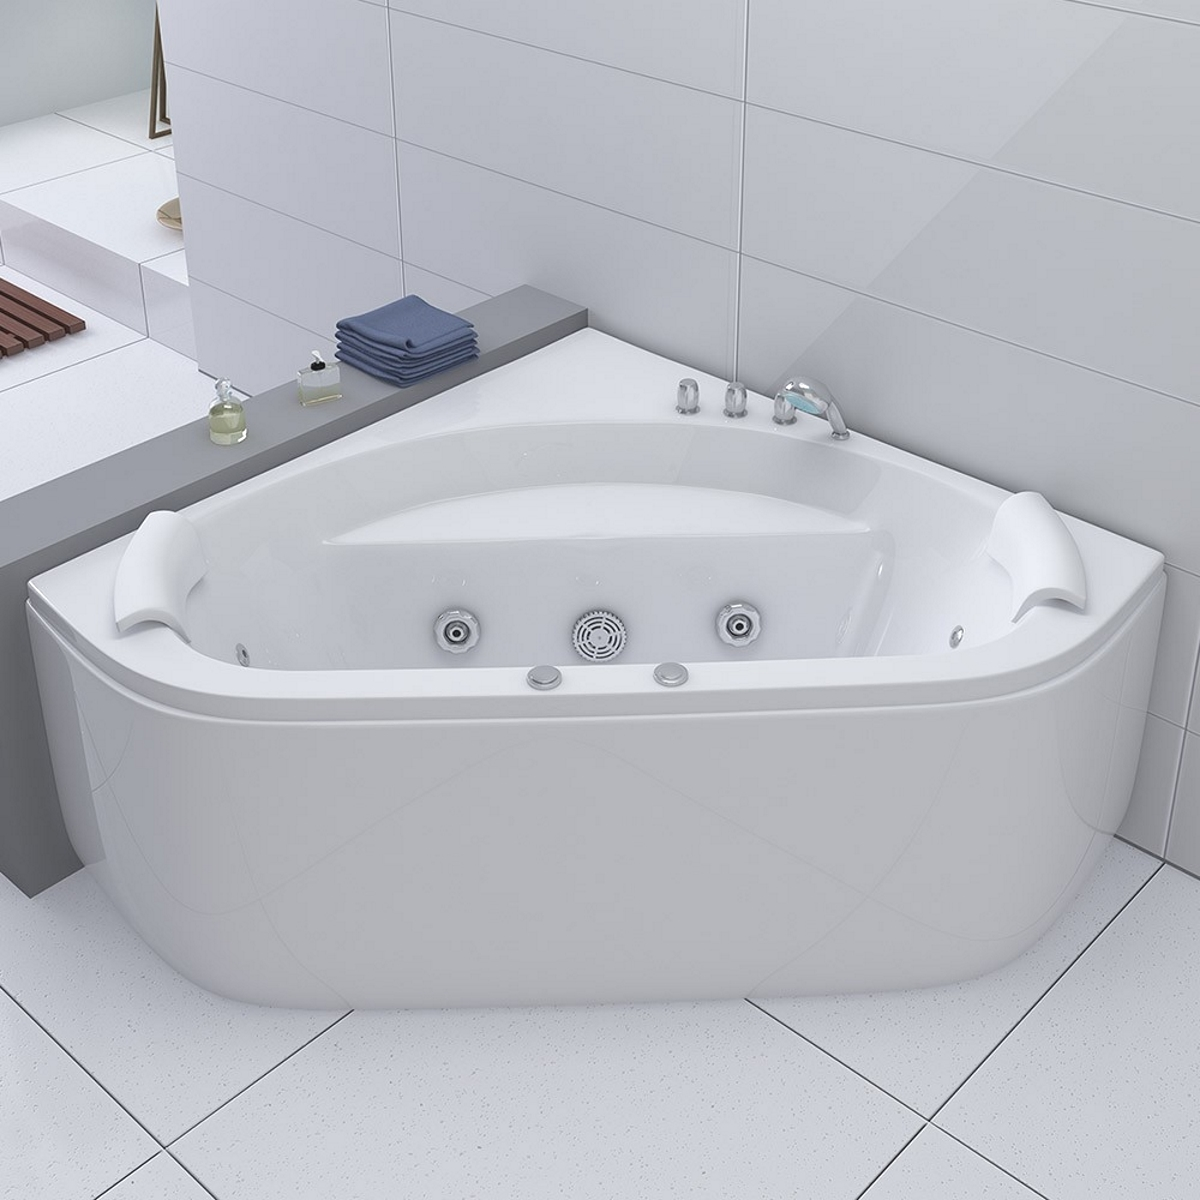 luxus whirlpool badewanne andorra 140 x 140 cm mit 12 massage d sen led spa f r bad eckwanne. Black Bedroom Furniture Sets. Home Design Ideas